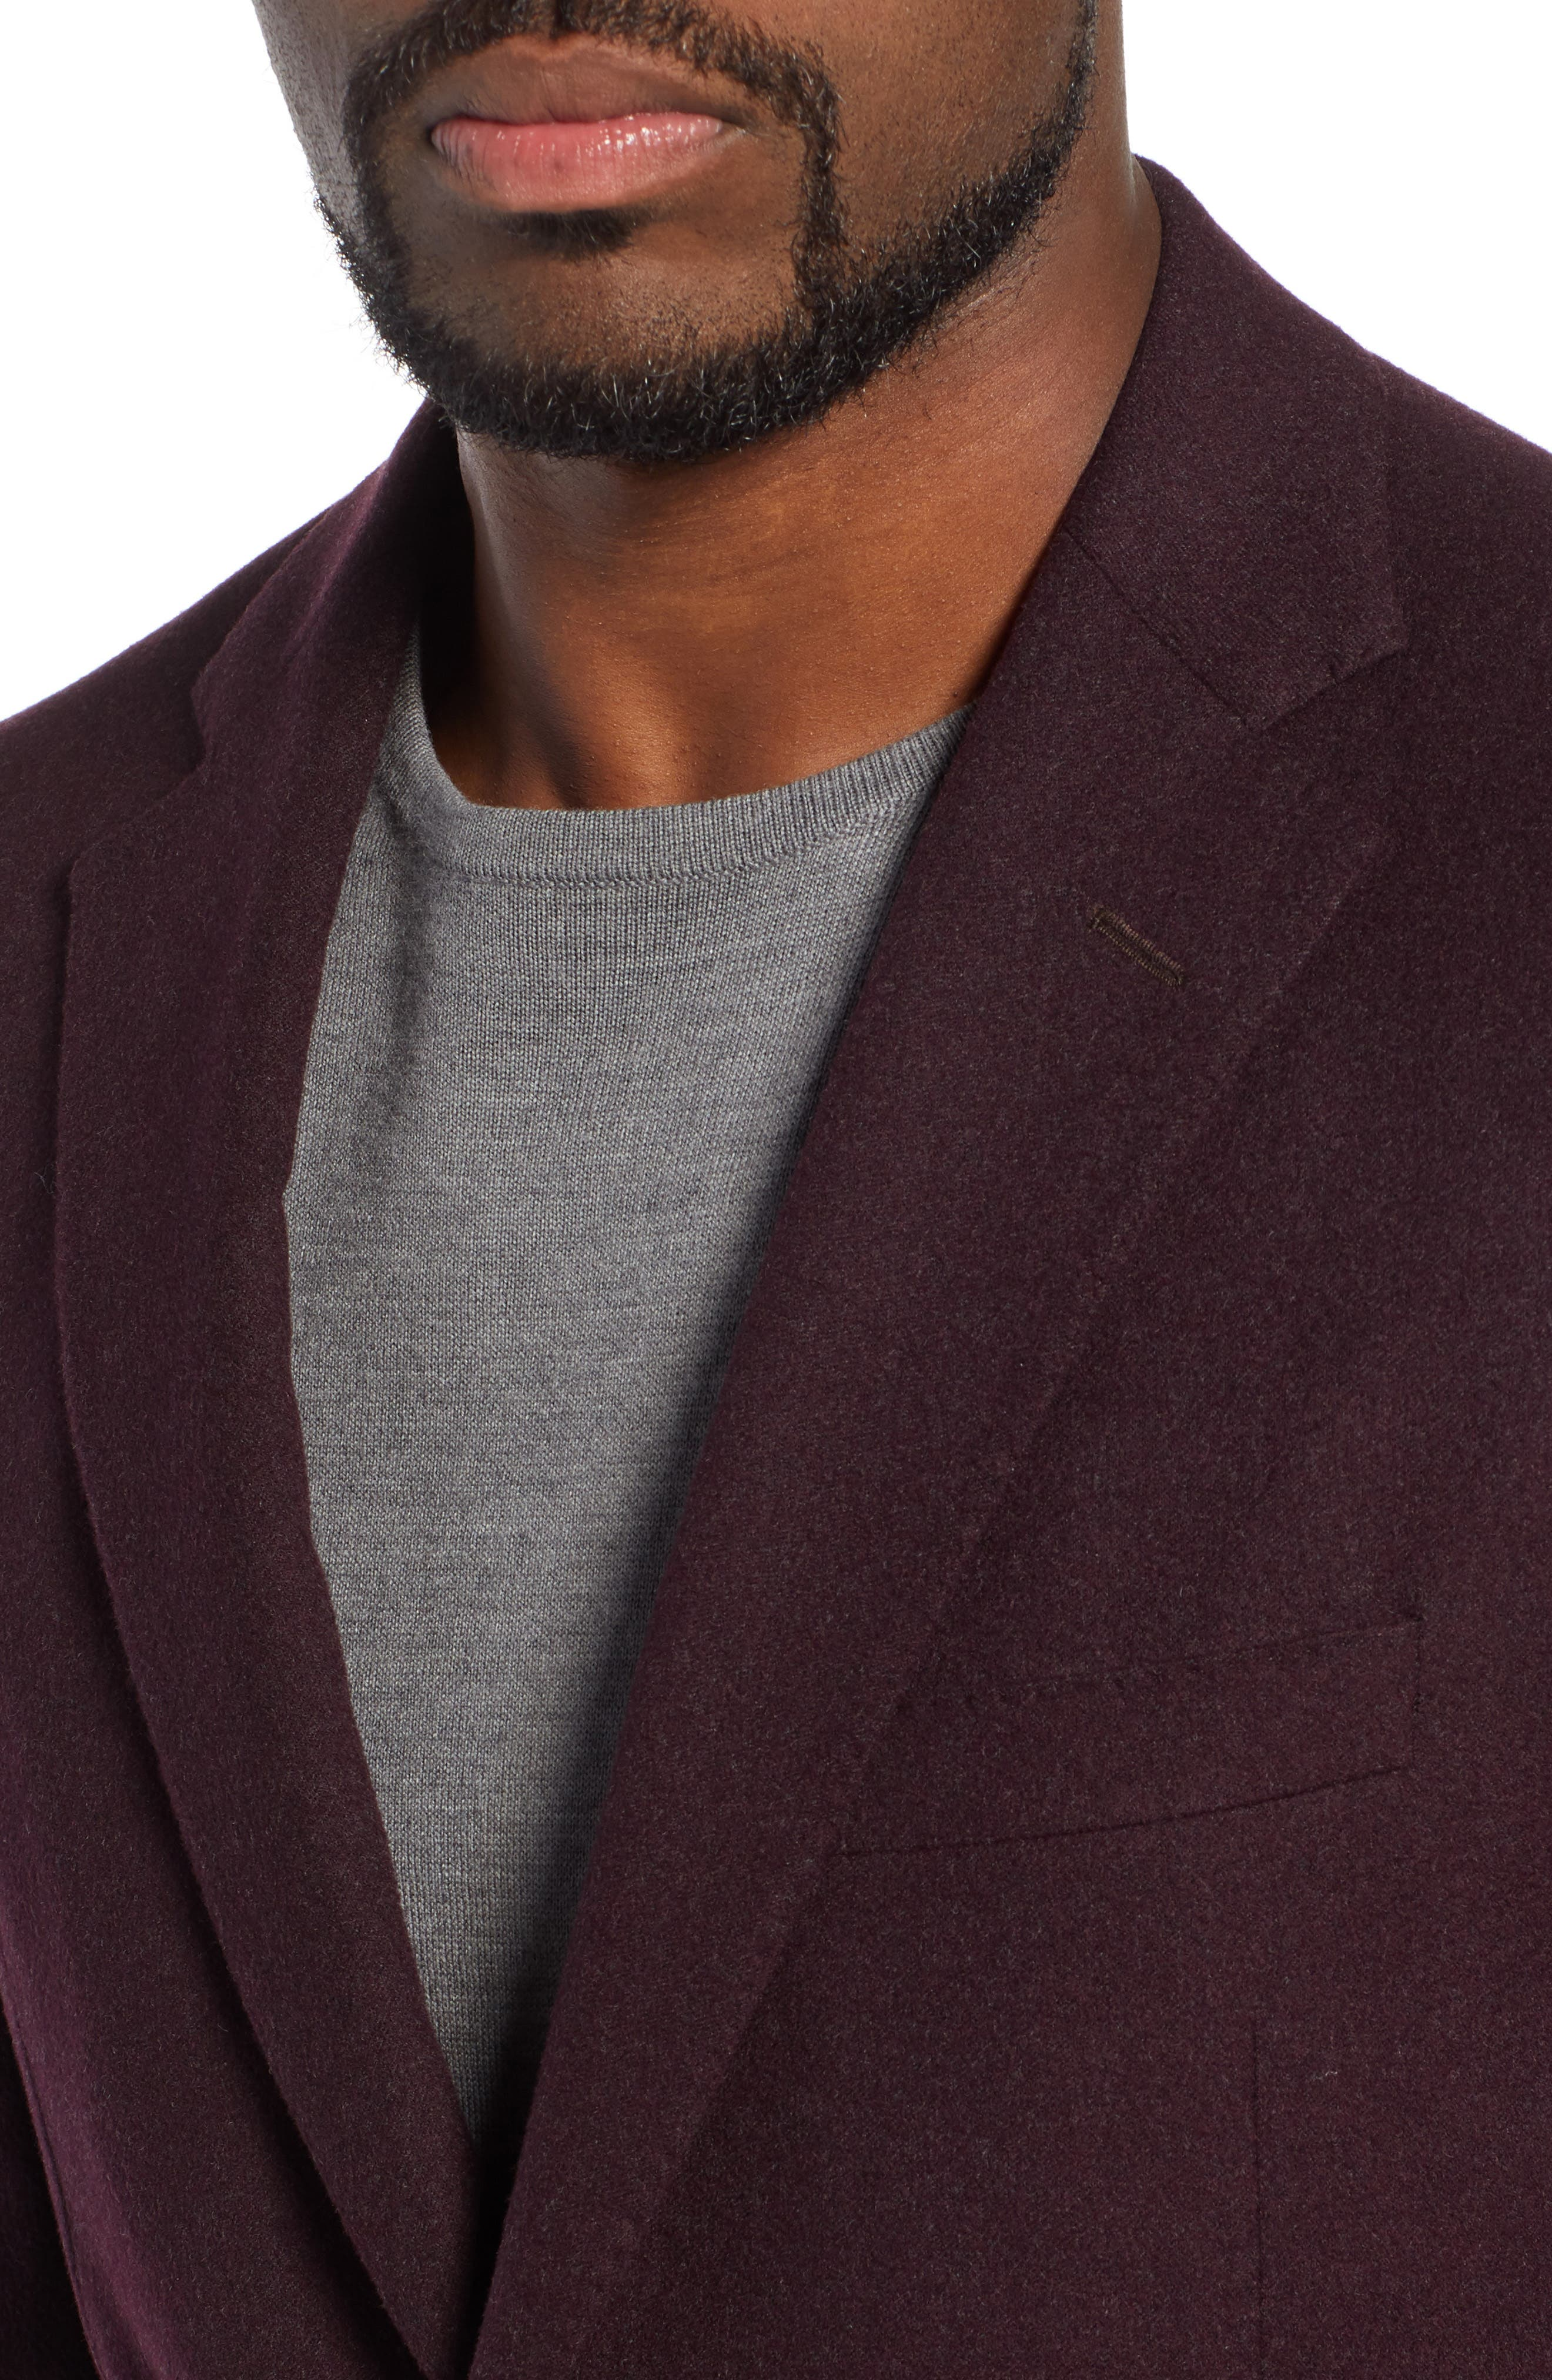 Classic Fit Wool Blazer,                             Alternate thumbnail 4, color,                             BURGUNDY